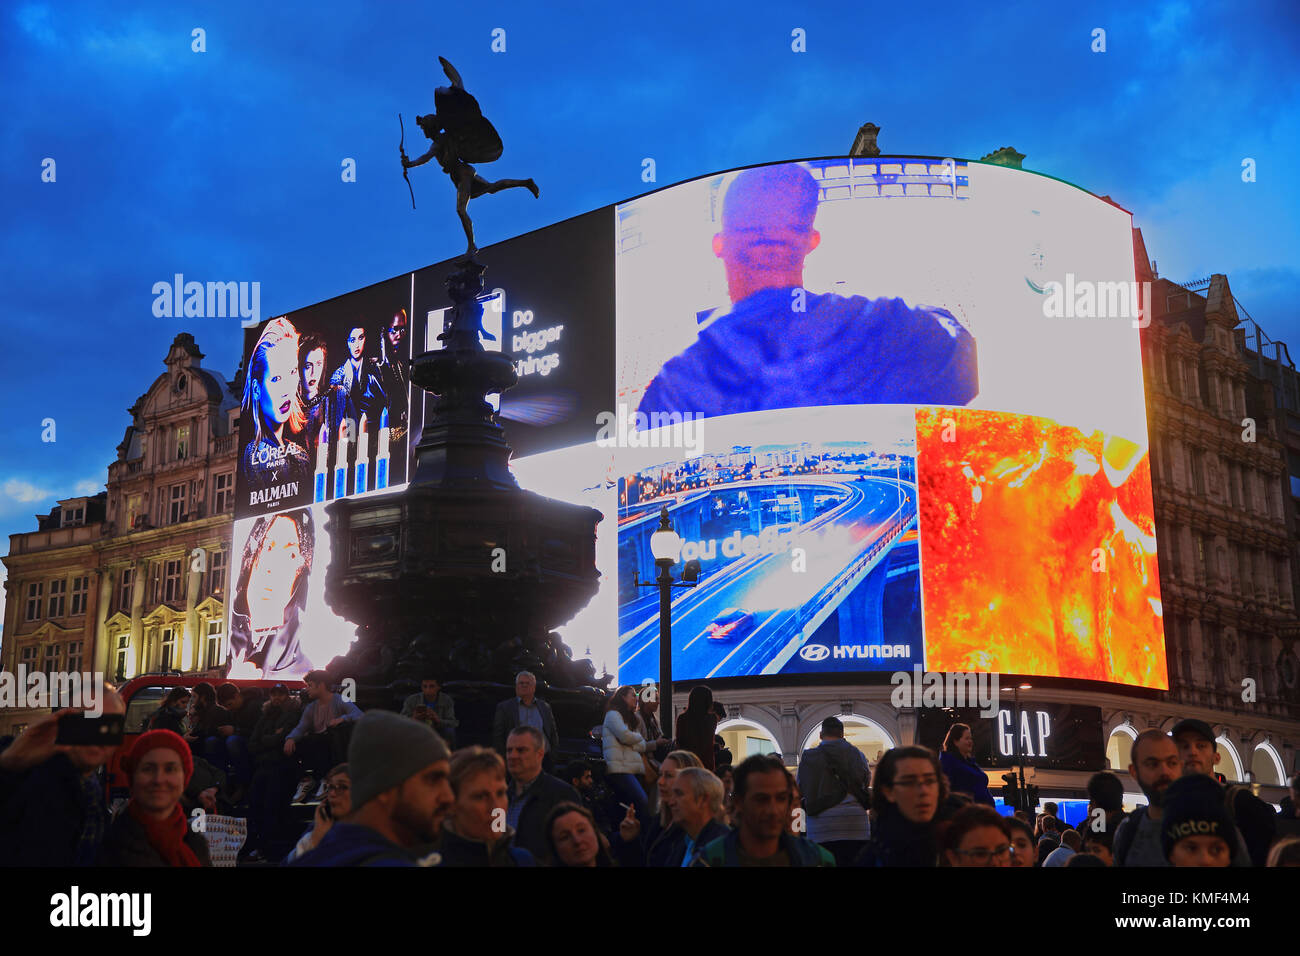 The new advertising screen at Piccadilly Circus, in London, UK - Stock Image